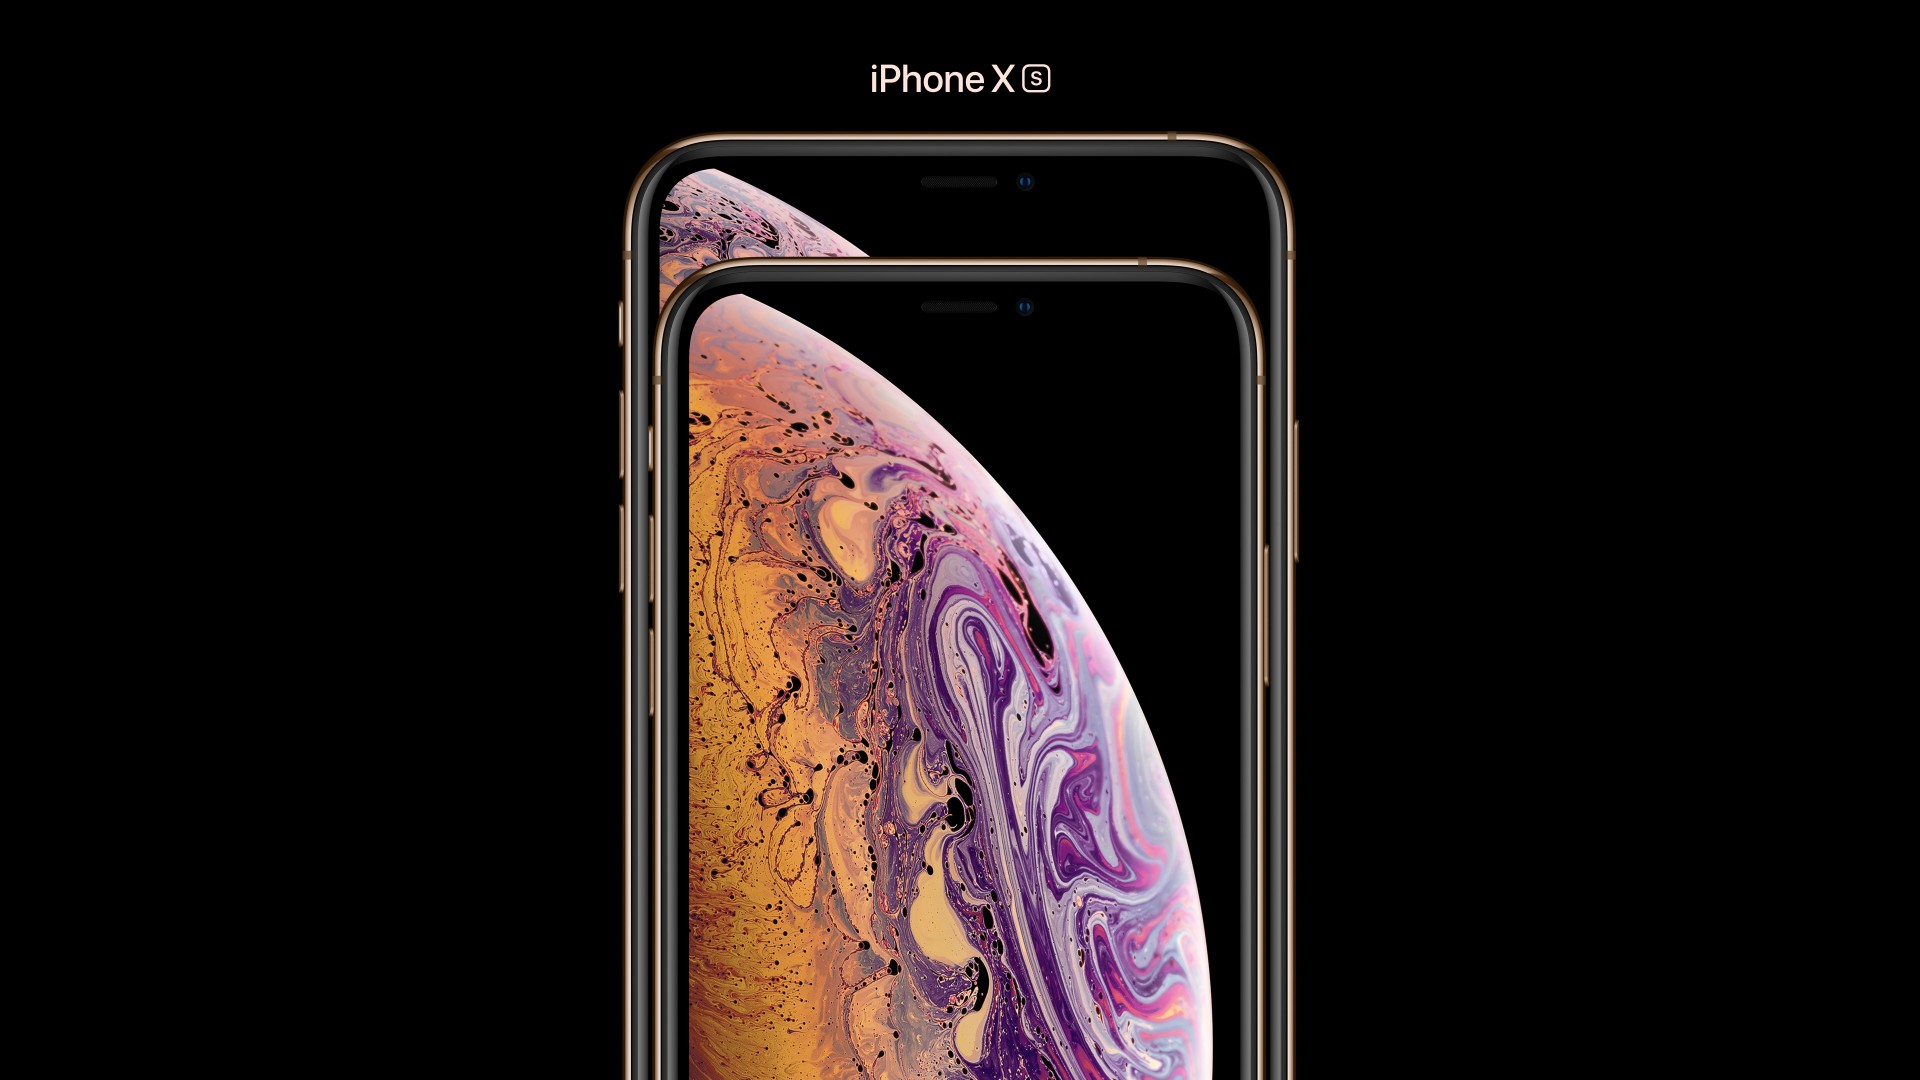 Wallpaper iPhone XS, iPhone XS Max, gold, smartphone, 4k, Apple September 2018 Event, HiTech 20334